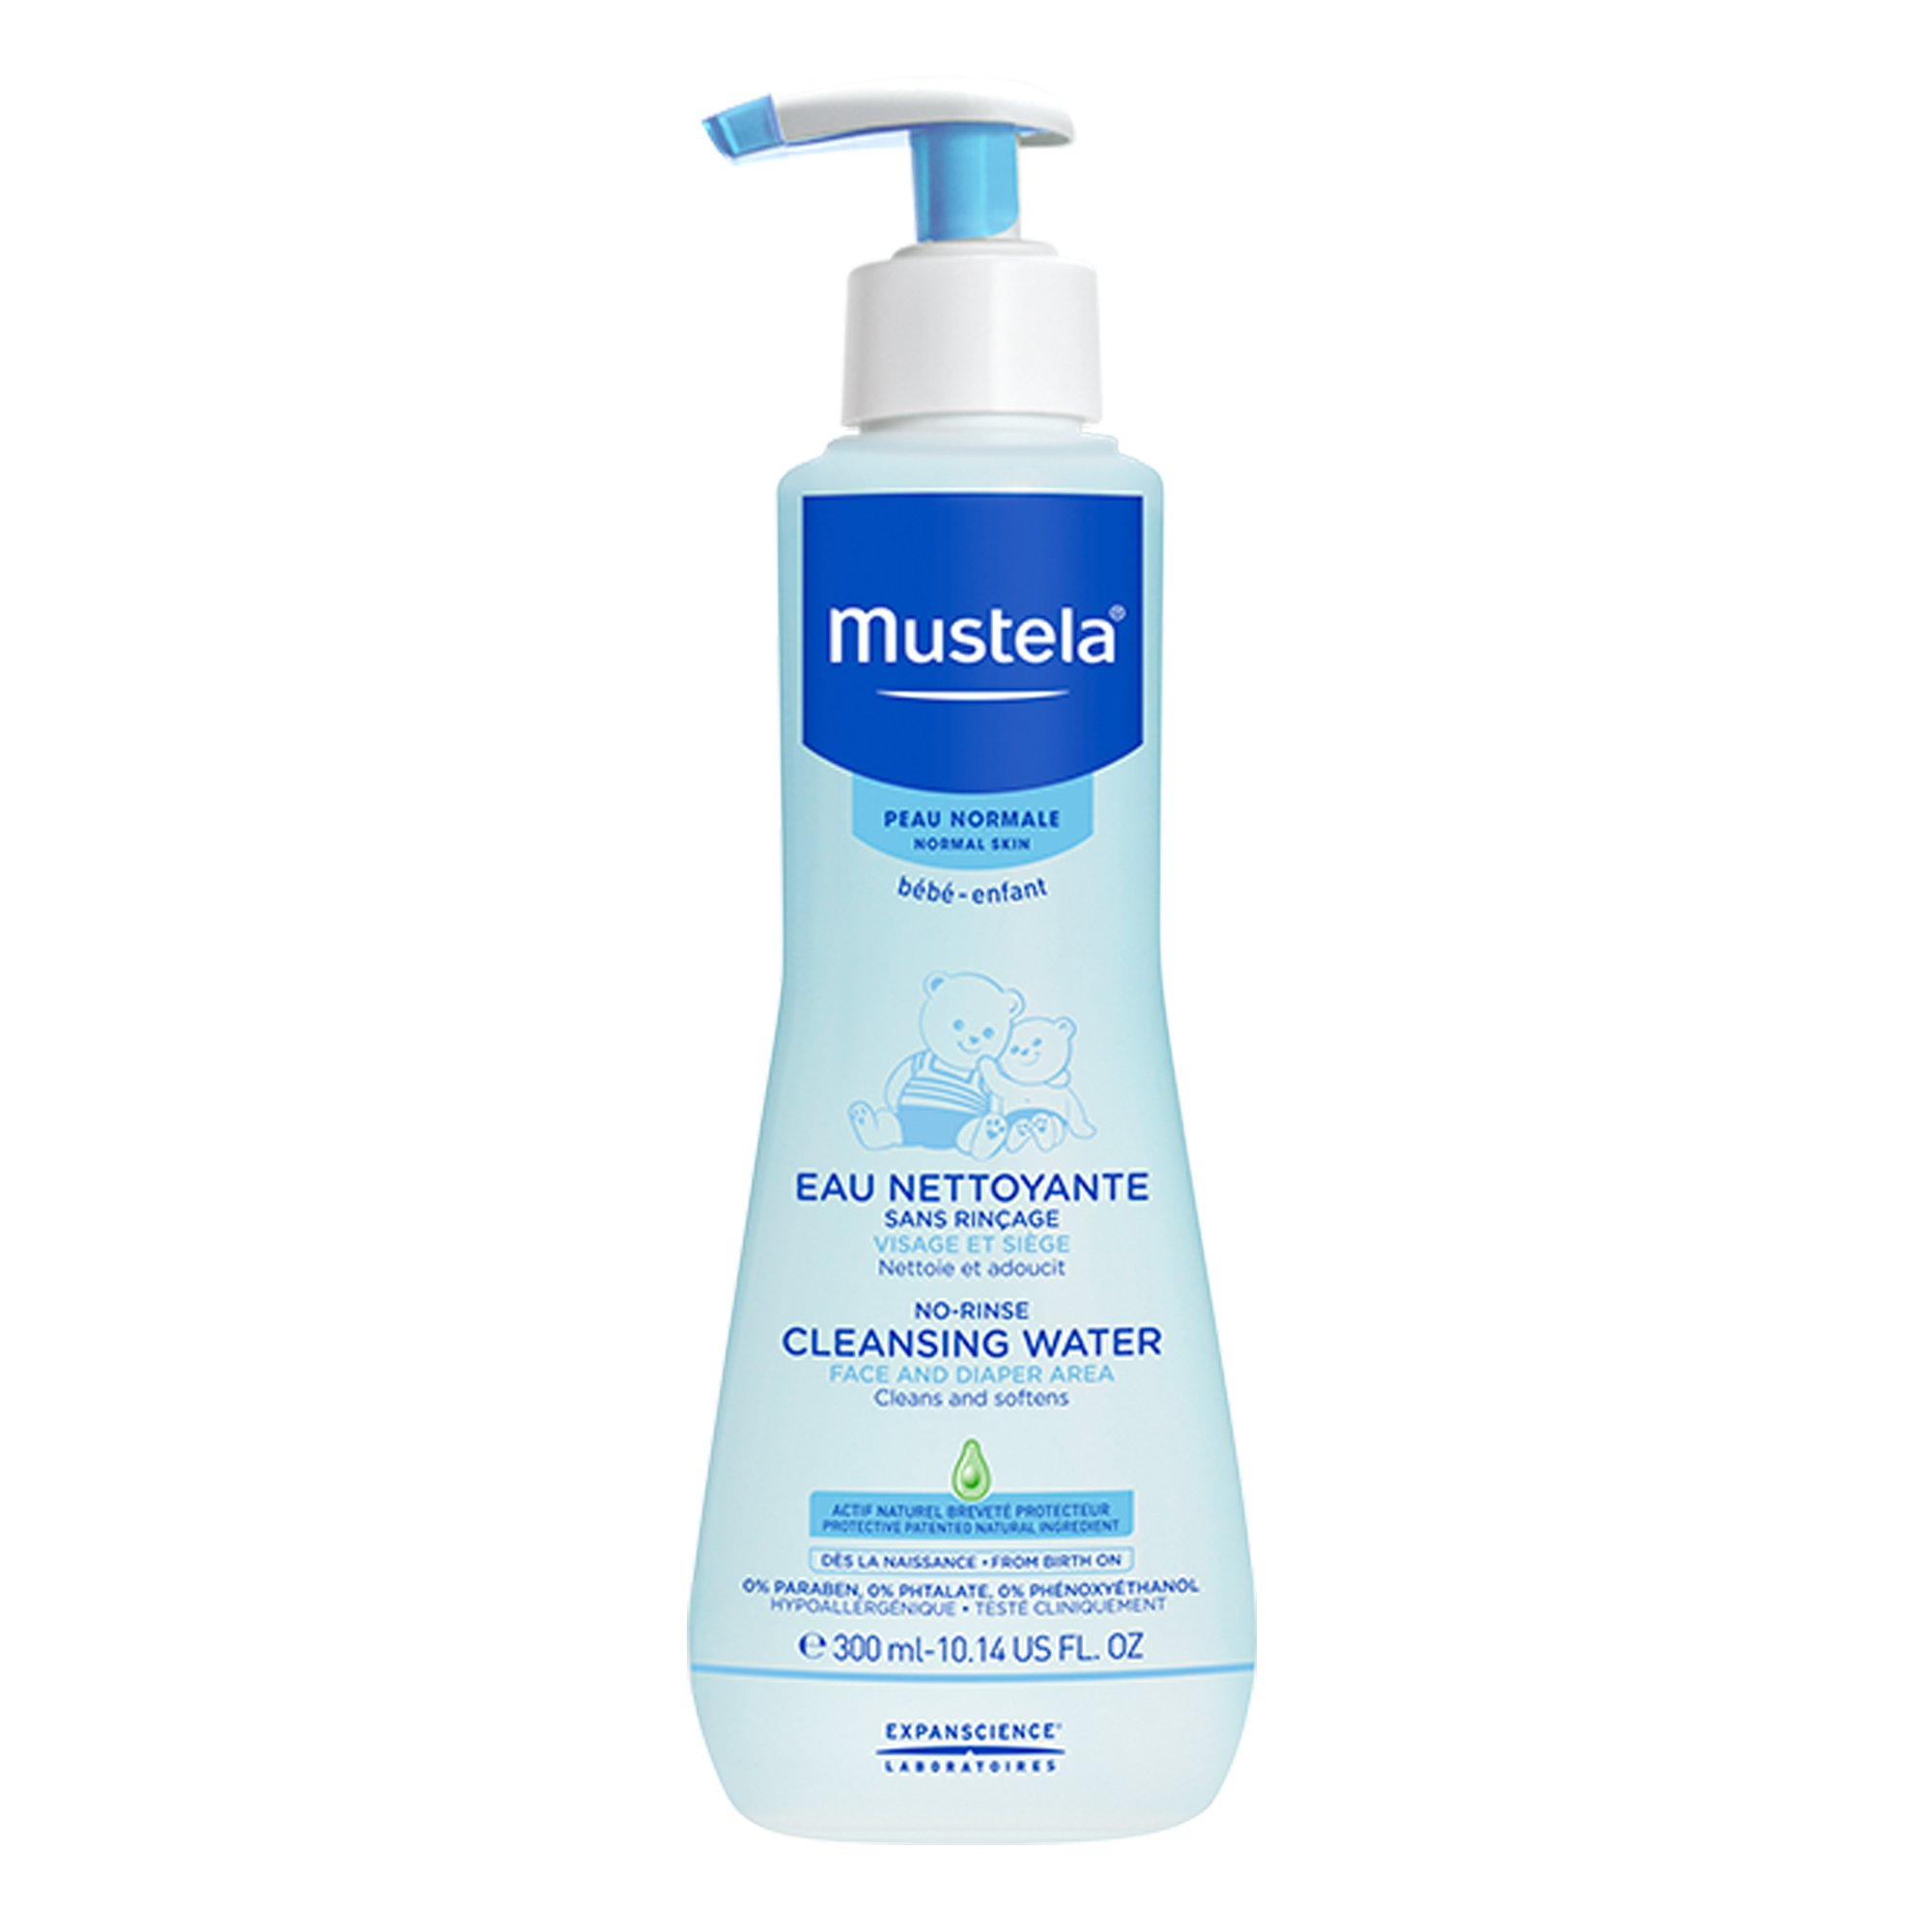 Mustela No Rinse Cleansing Water, Micellar Water Cleanser for Baby, 10.14 Fl Oz